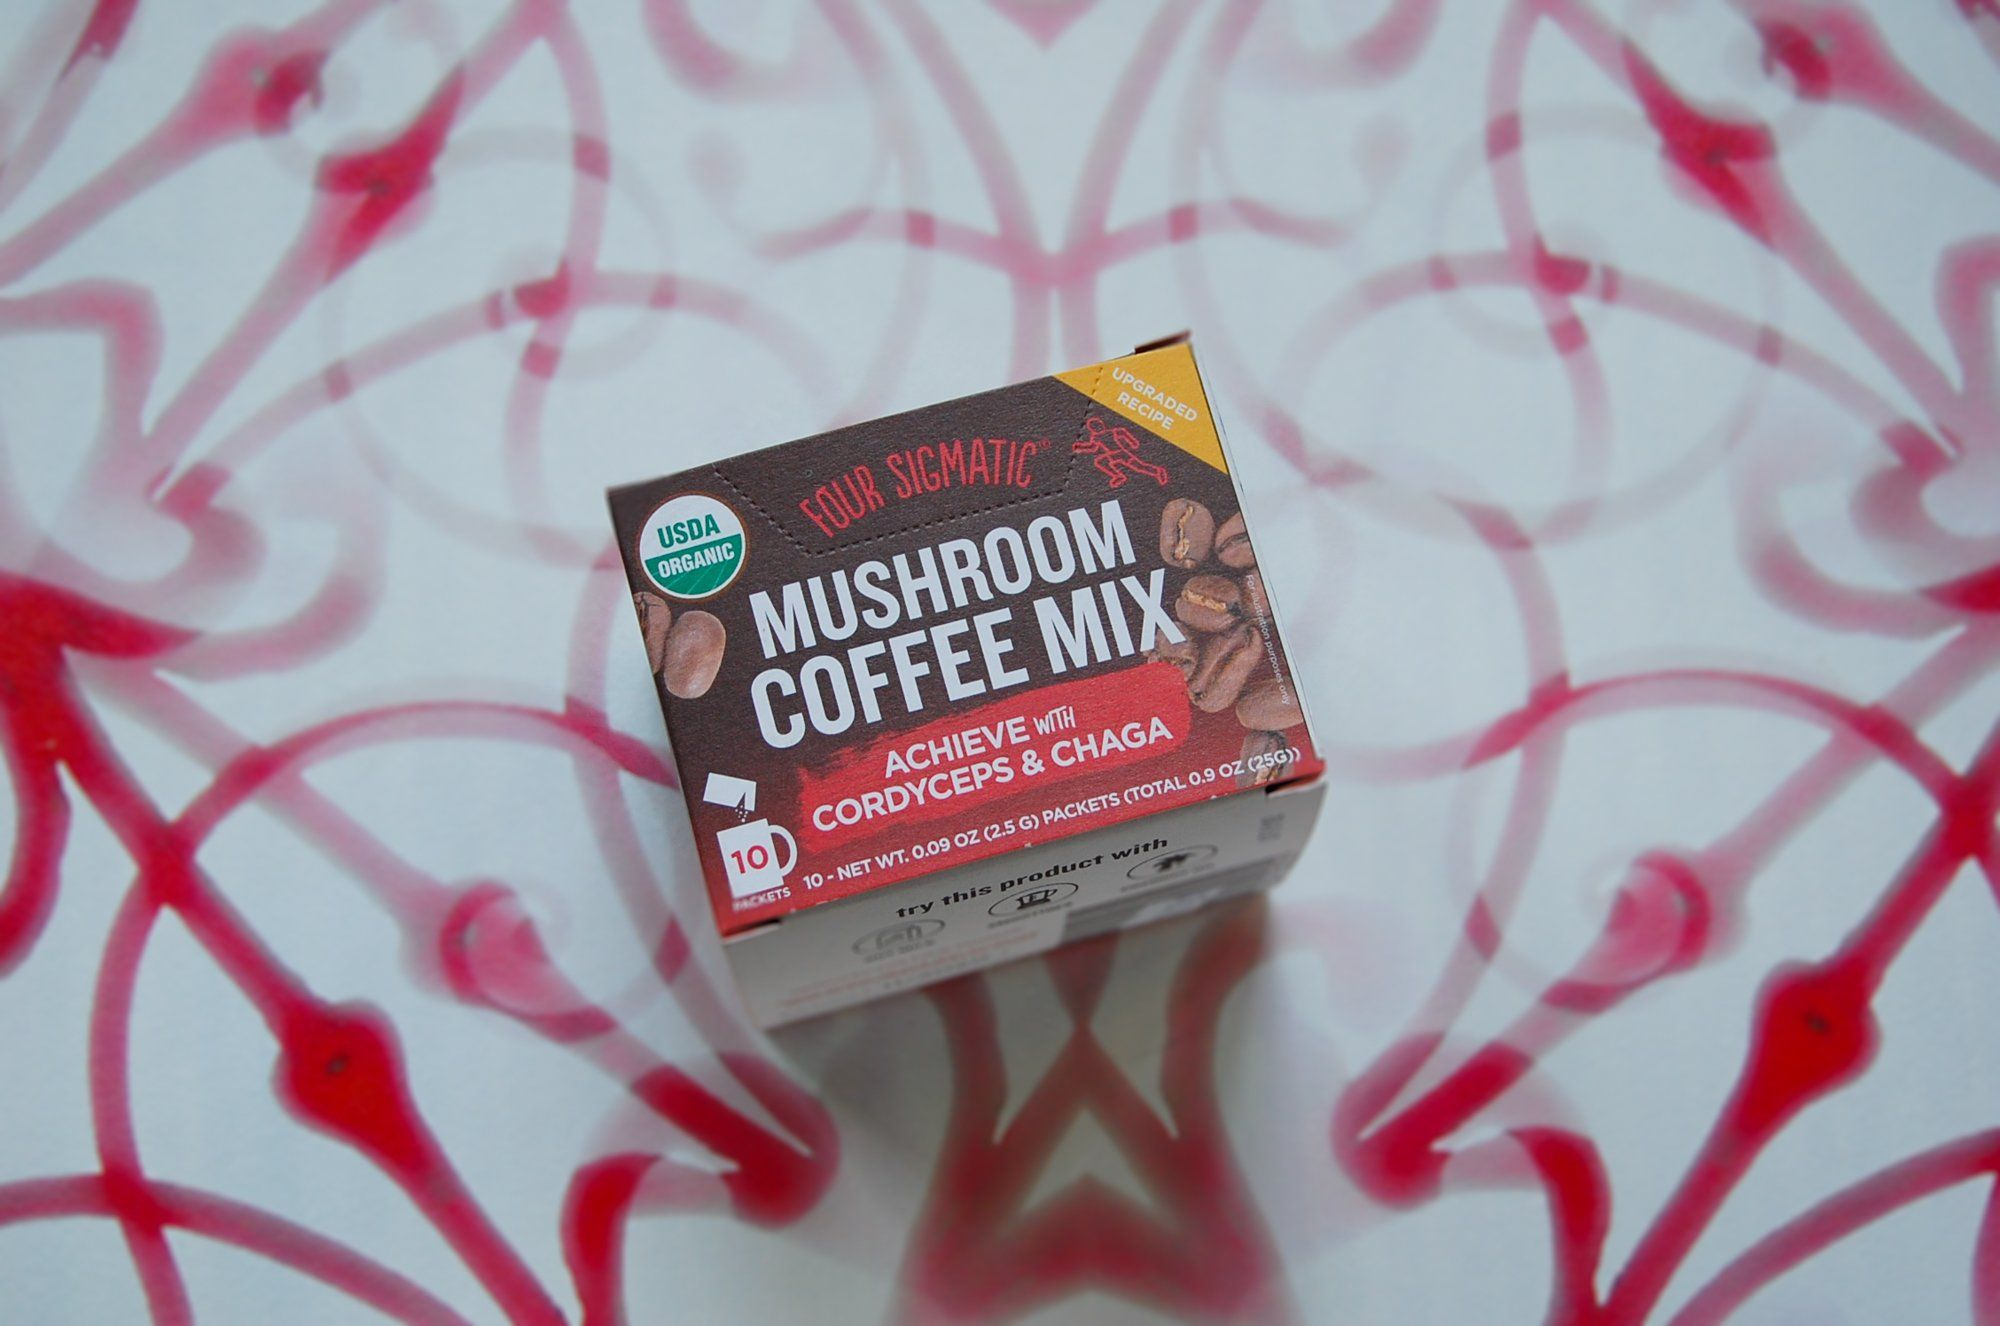 Mushroom Coffee Cordyceps & Chaga (Four Sigmatic)